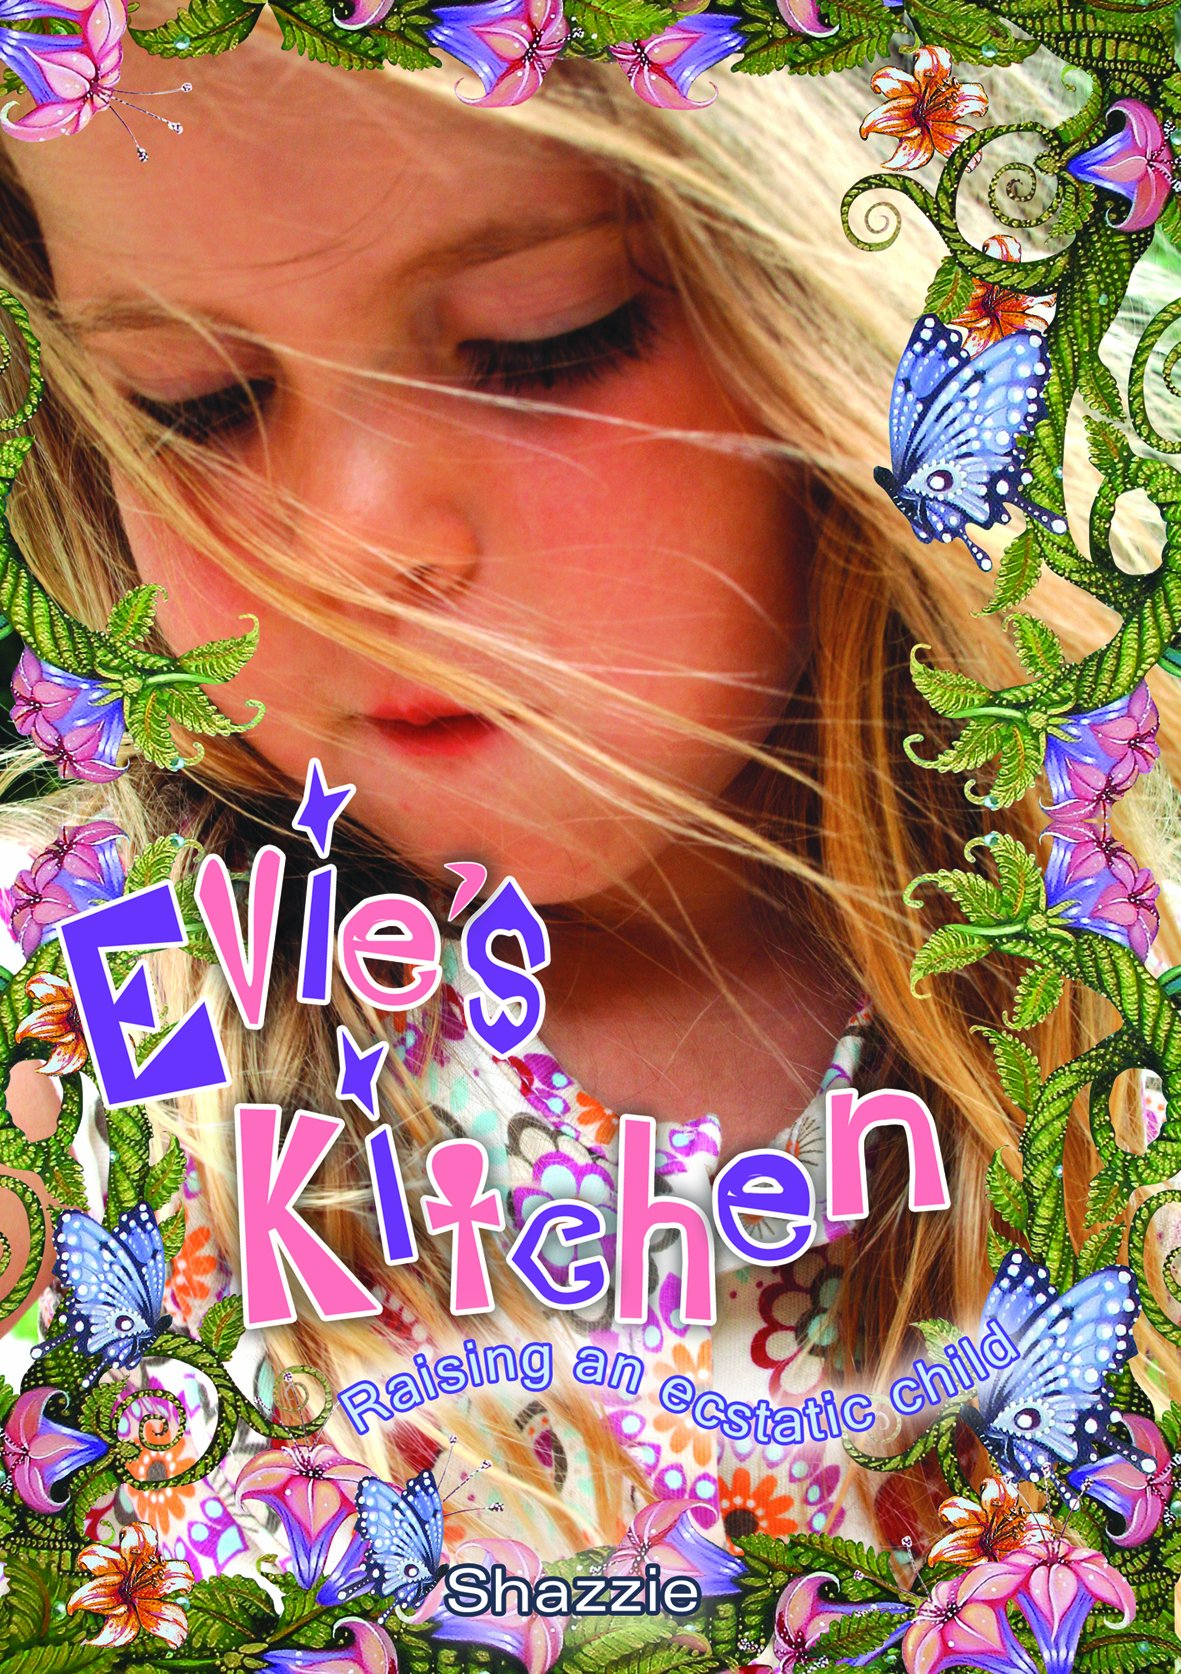 "evie's kitchen - By ShazzieAN INDISPENSABLE BOOK IF YOU ARE INTO RAW/LIVE VEGAN NUTRITION. CHILDREN ON A PLANT-BASED or PLANT-CENTERED DIET NEED SUPPLEMENTATION. Evie's Kitchen by Shazzie is a comprehensive guide to raising a child as naturally as possible in the western world. Shazzie examines the breastfeeding culture, the benefits of raw food, and the nutritional challenges of raising a child as a vegan. With a depth of research never published before in vegan literature, Shazzie works out the supplements needed to raise a child healthy, vegan and raw. Her final conclusions in her journey may startle you!There are over 180 full colour photographed recipes in this book, providing many different meal options for the raw child. The recipes start with ""first foods"" and then progress to foods and meals that children and adults alike will love. In fact, if you don't have a child in your life, you'll love this book just for the recipes! Check out the following, including Russell Brand's hair fell on my plate, My mate, Golden nuggets, Muffins w' stuffin, Golden brown texture like sun and Joe's ecstatic faked beans."